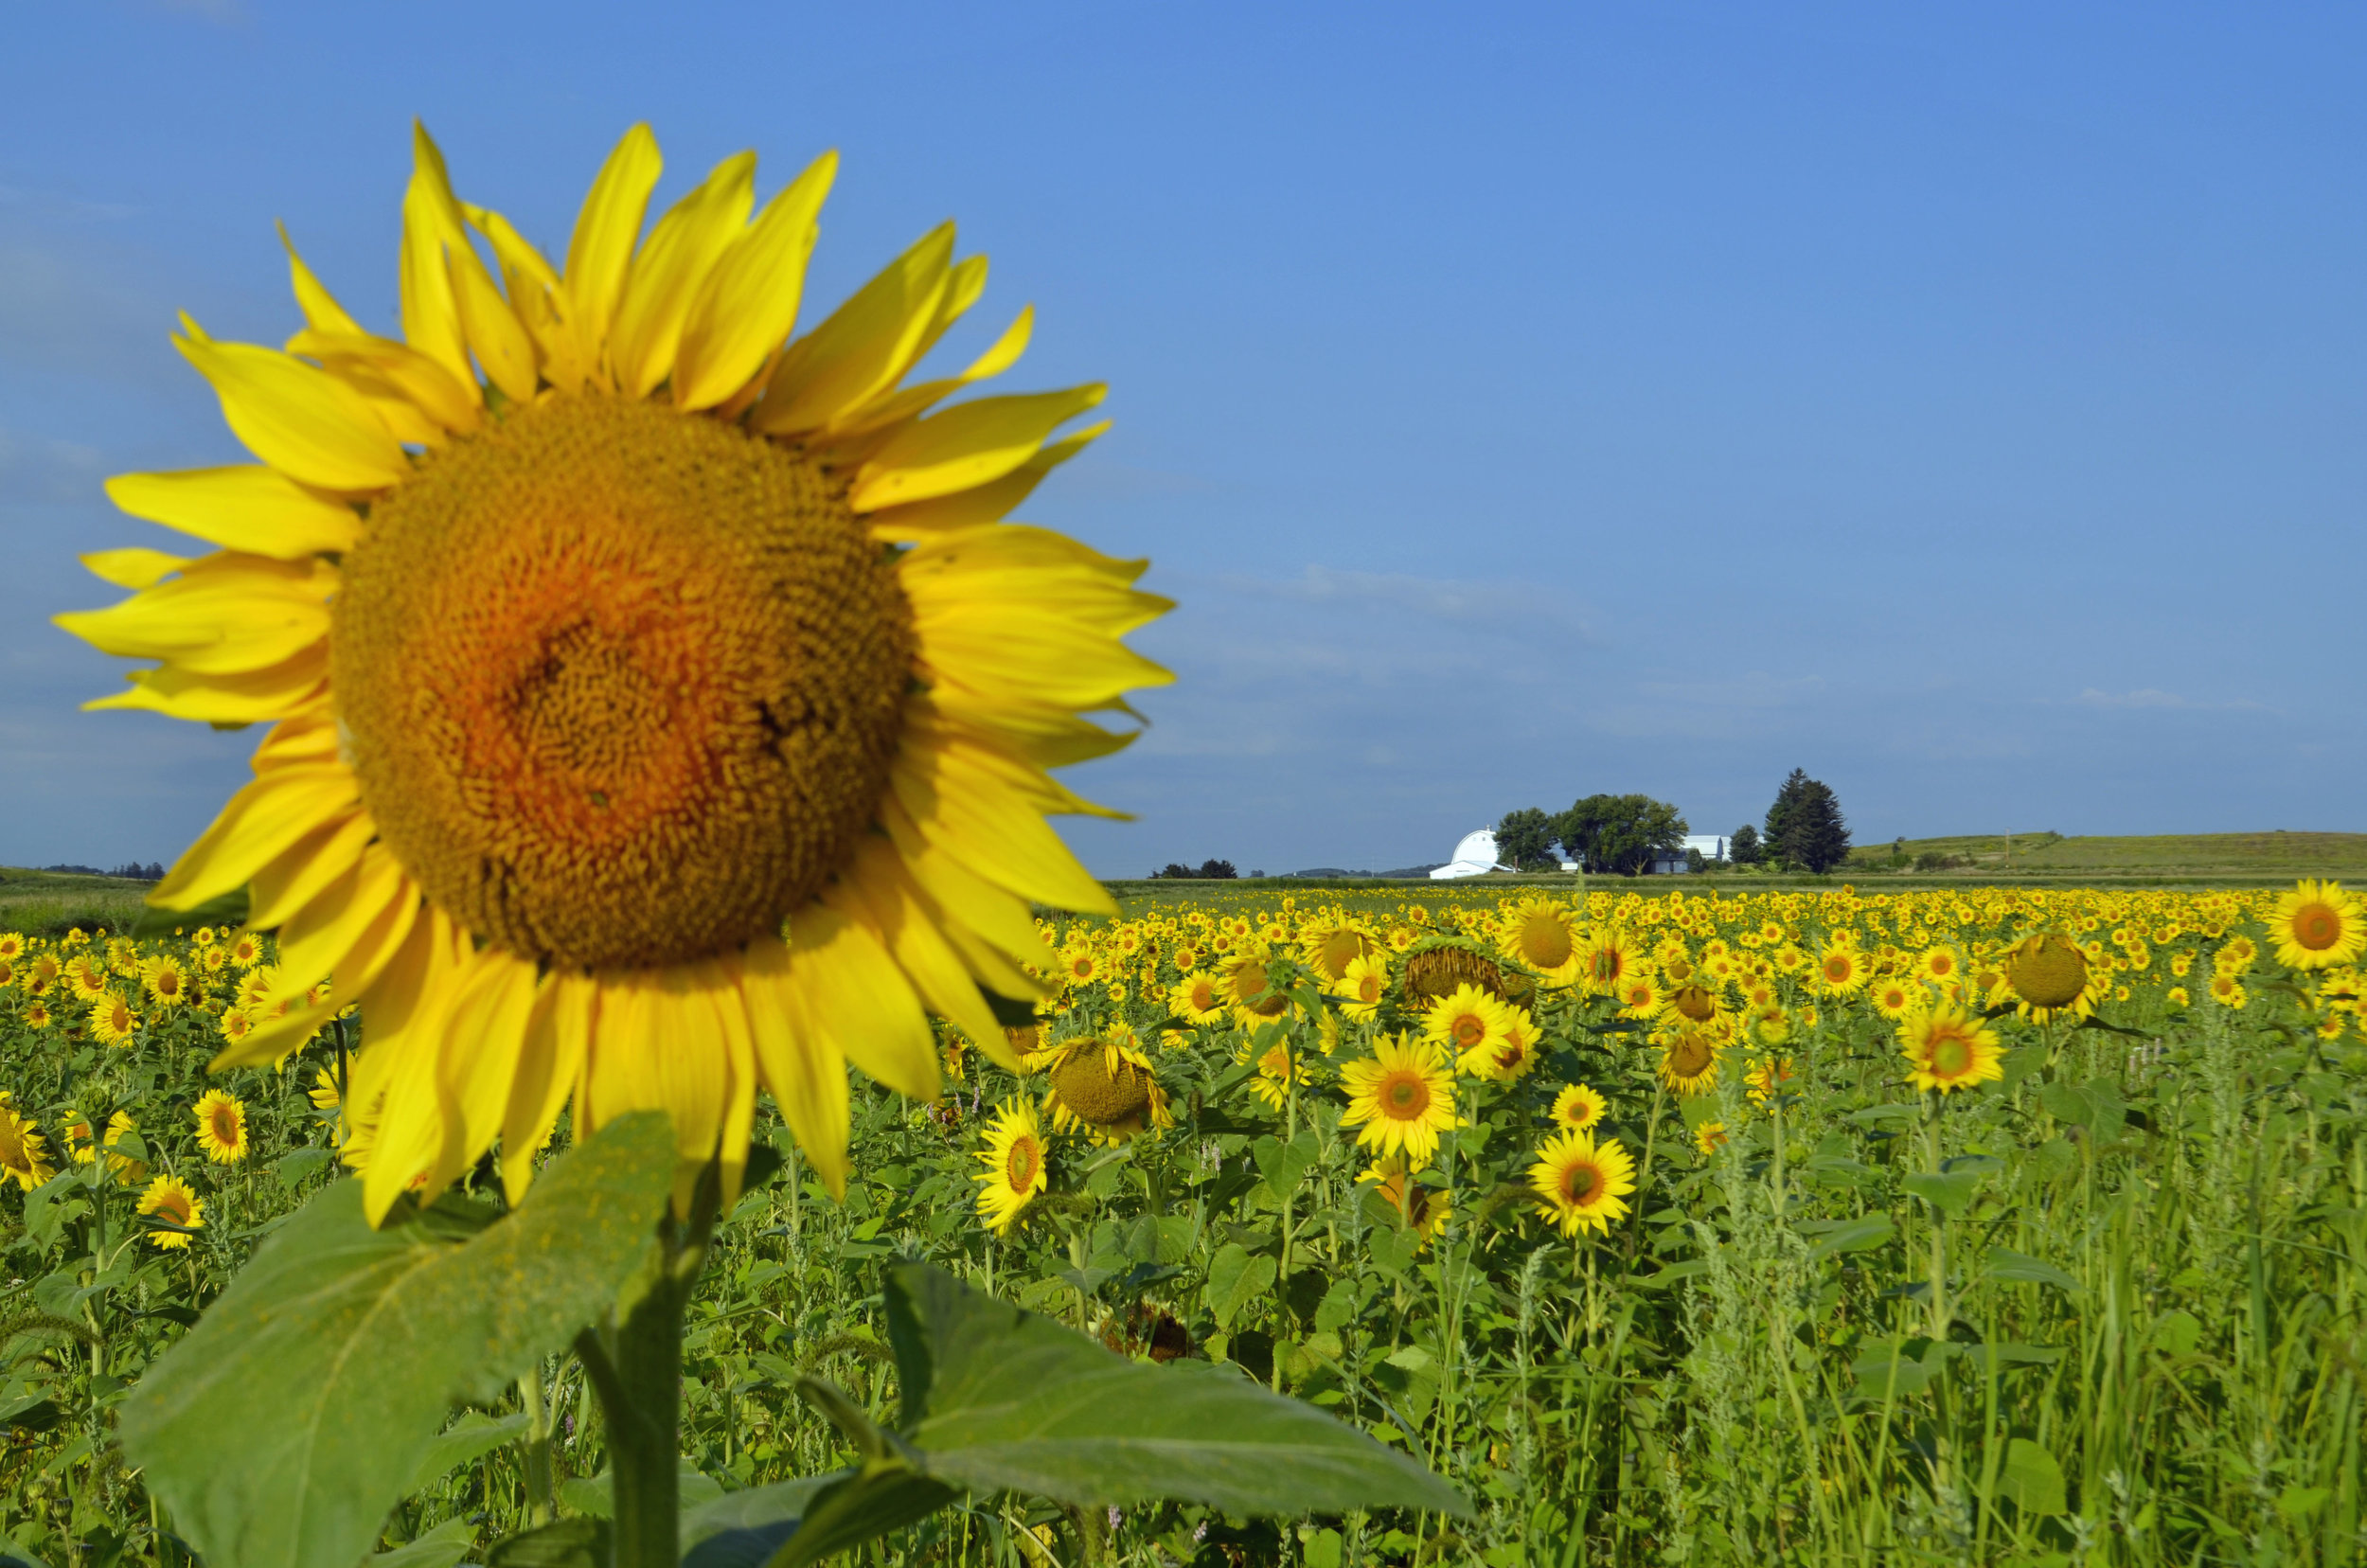 Sunflowers galore at the Goose Pond Sanctuary food plot. Photo by Mark Martin